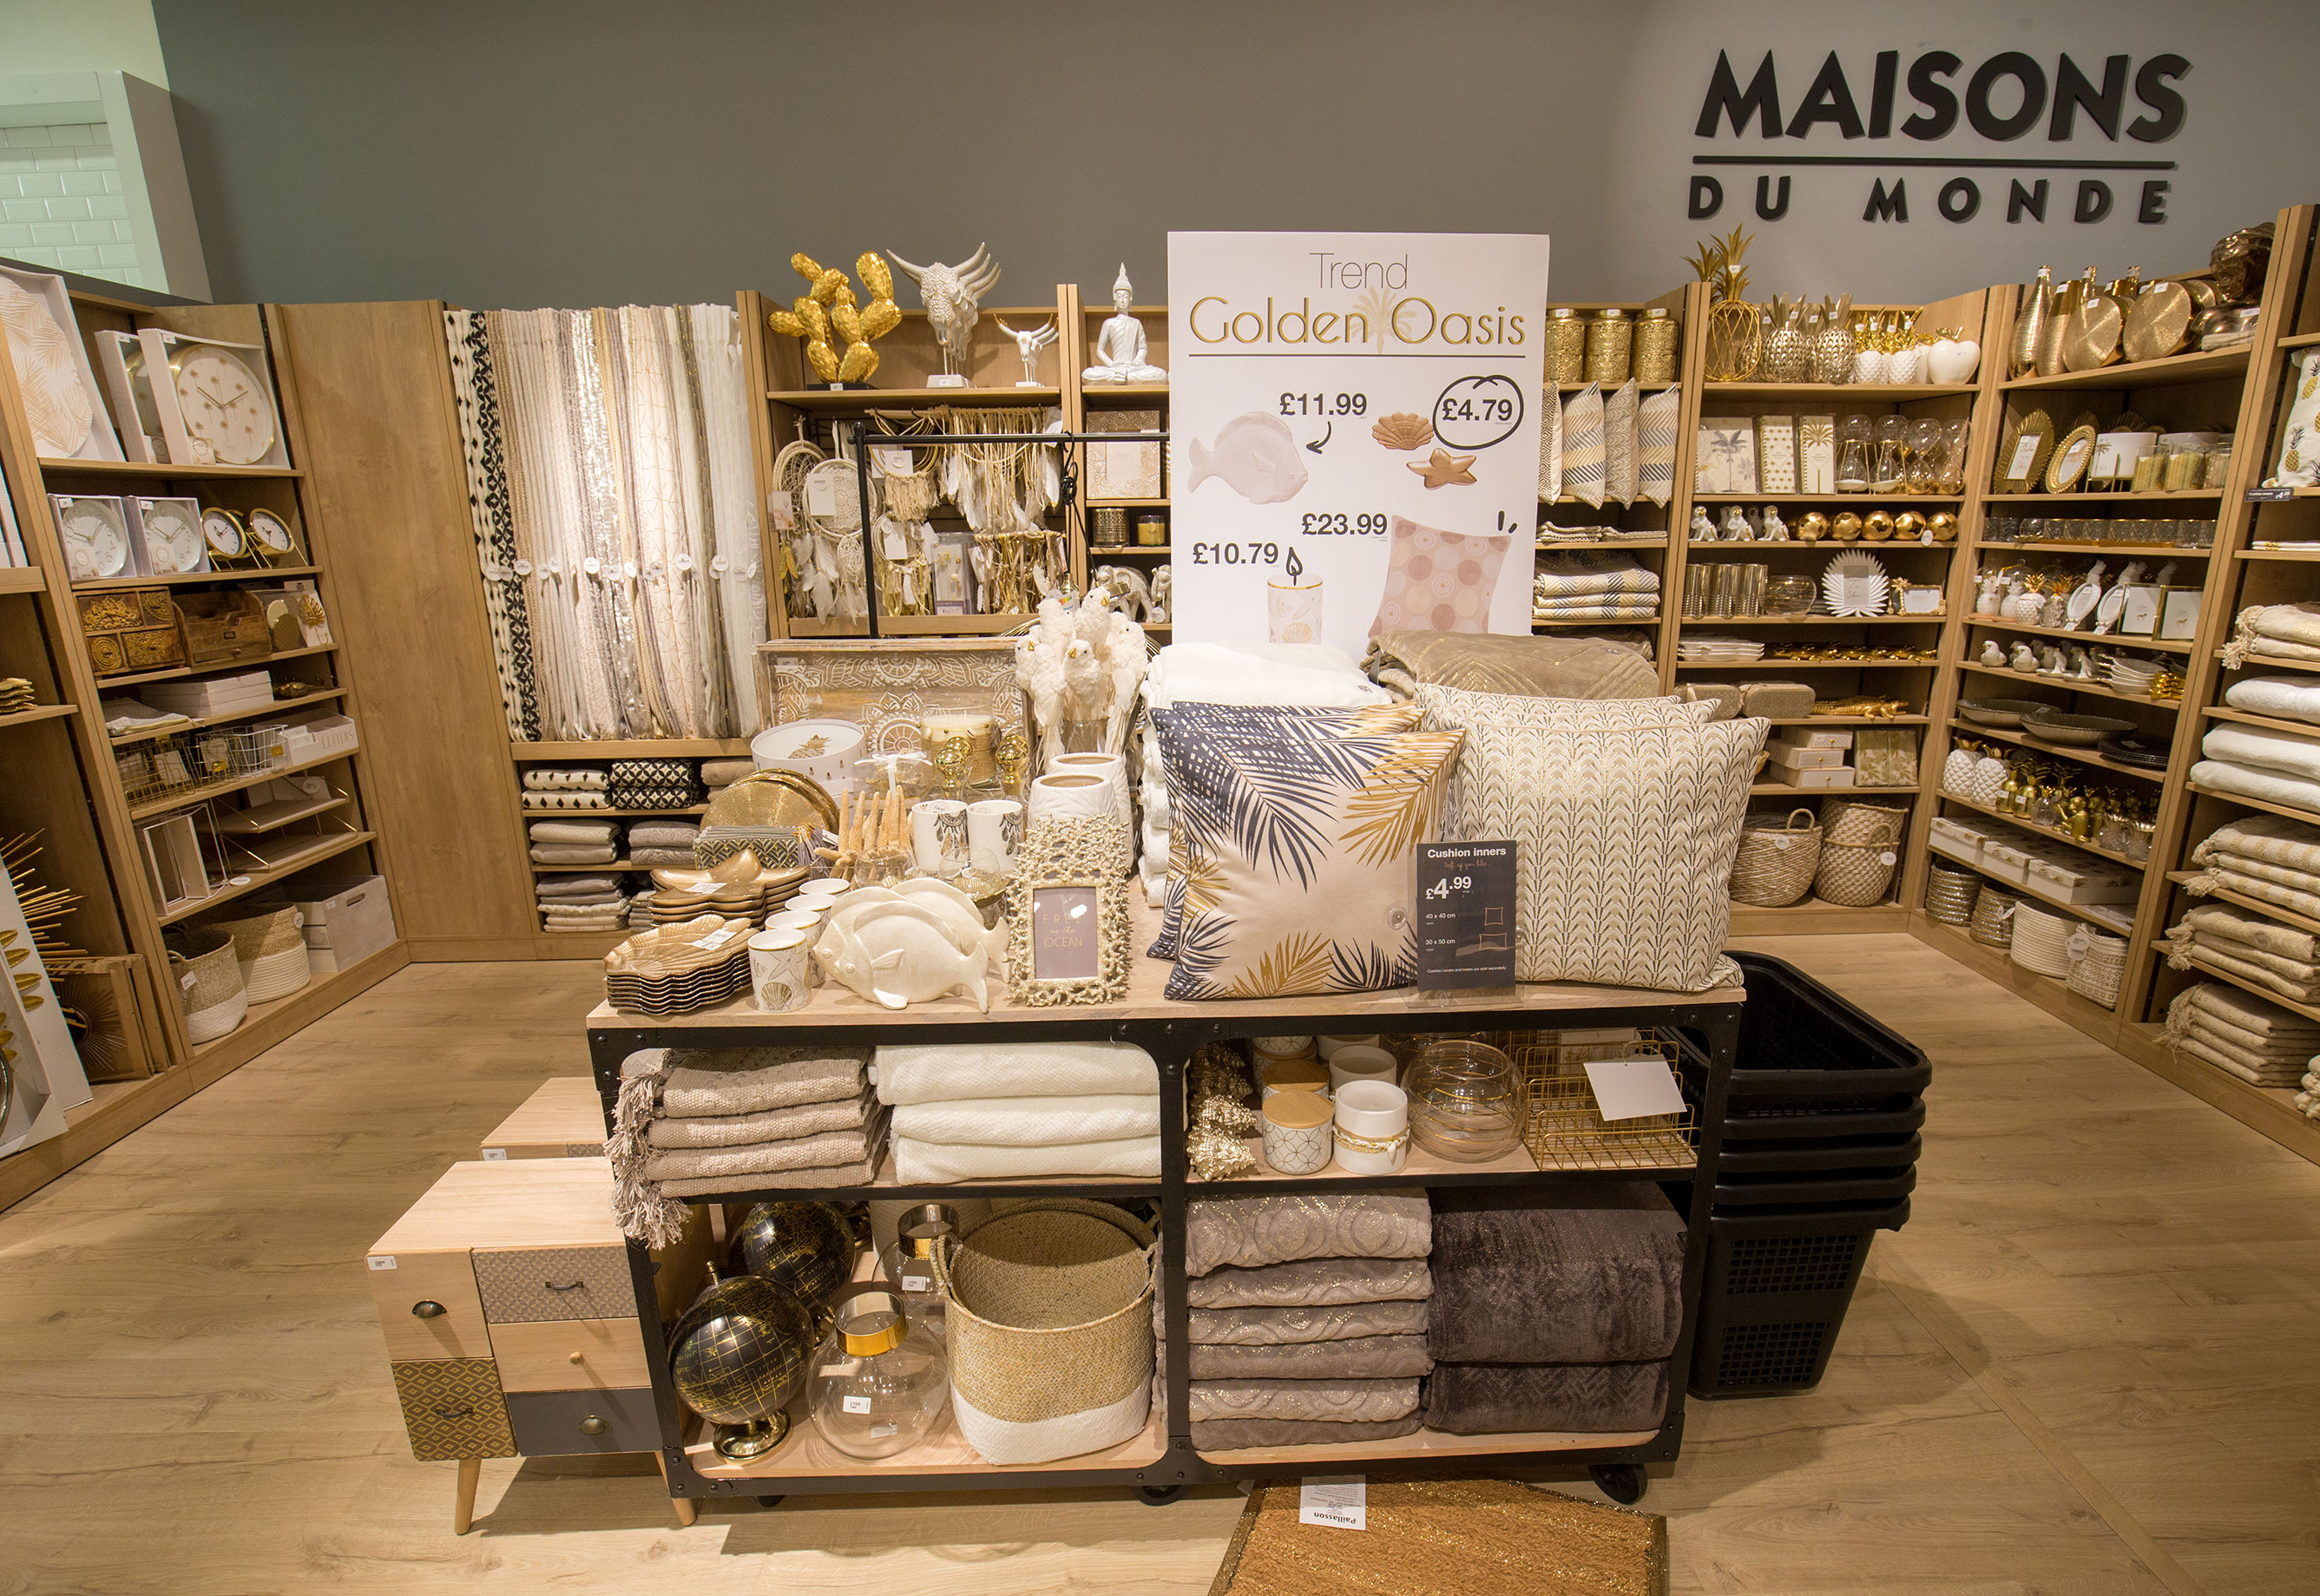 Maisons du monde opened 3 concessions in london westfield for Maison du monde beaugrenelle